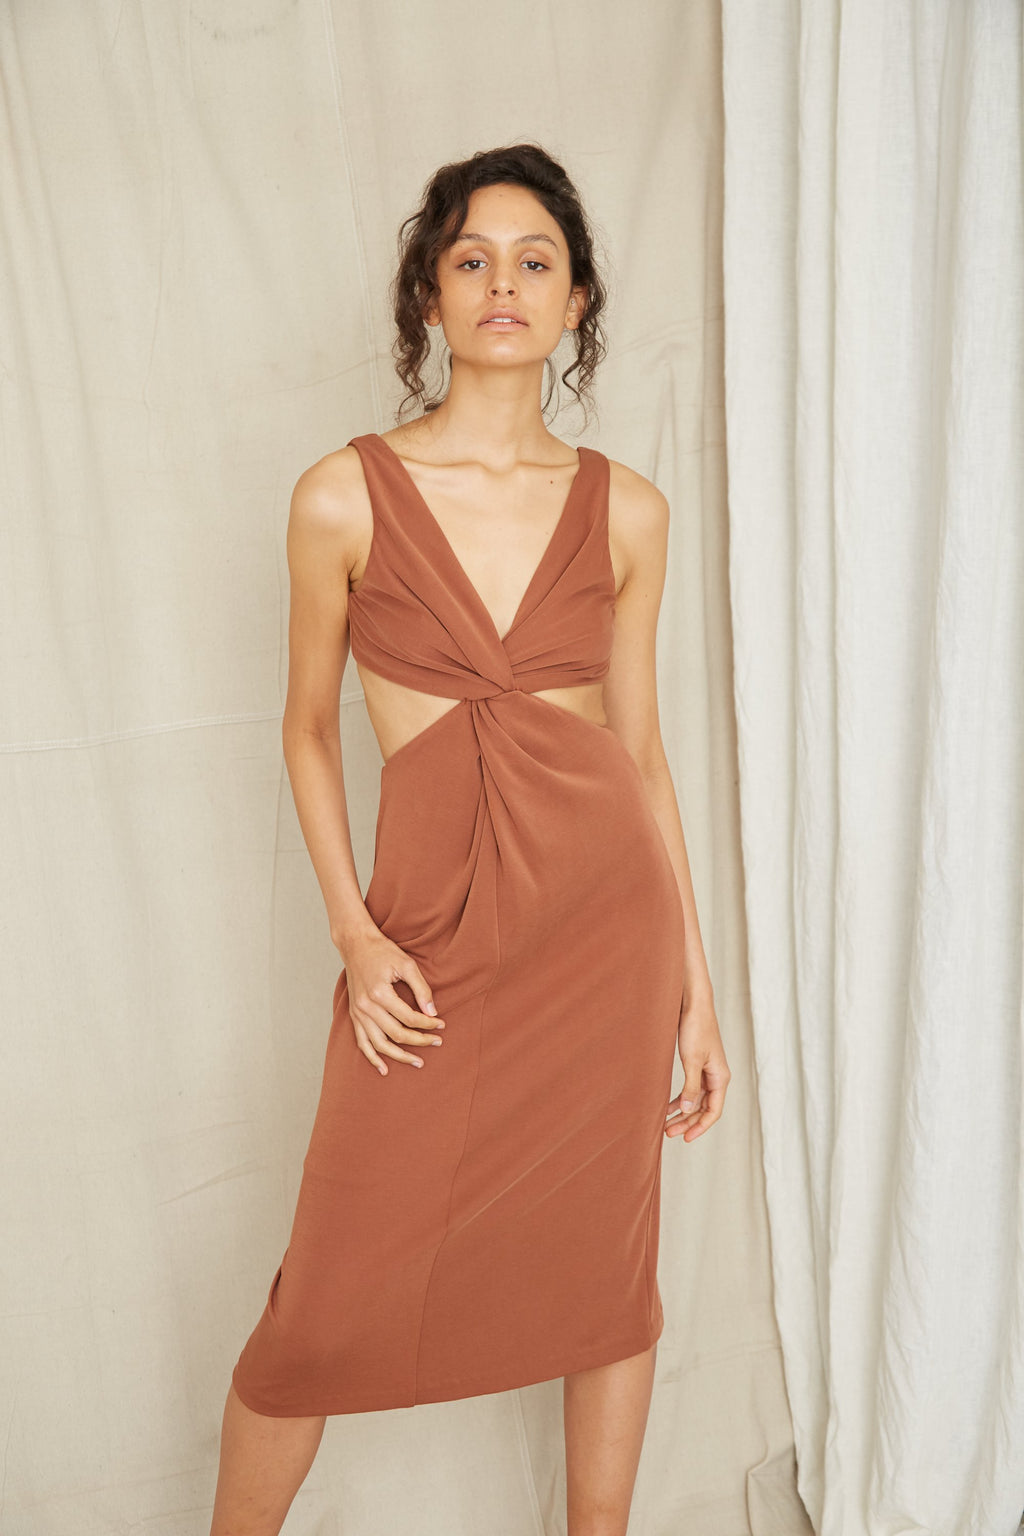 Third Form Twisted Cut Away Midi Dress - Cinnamon